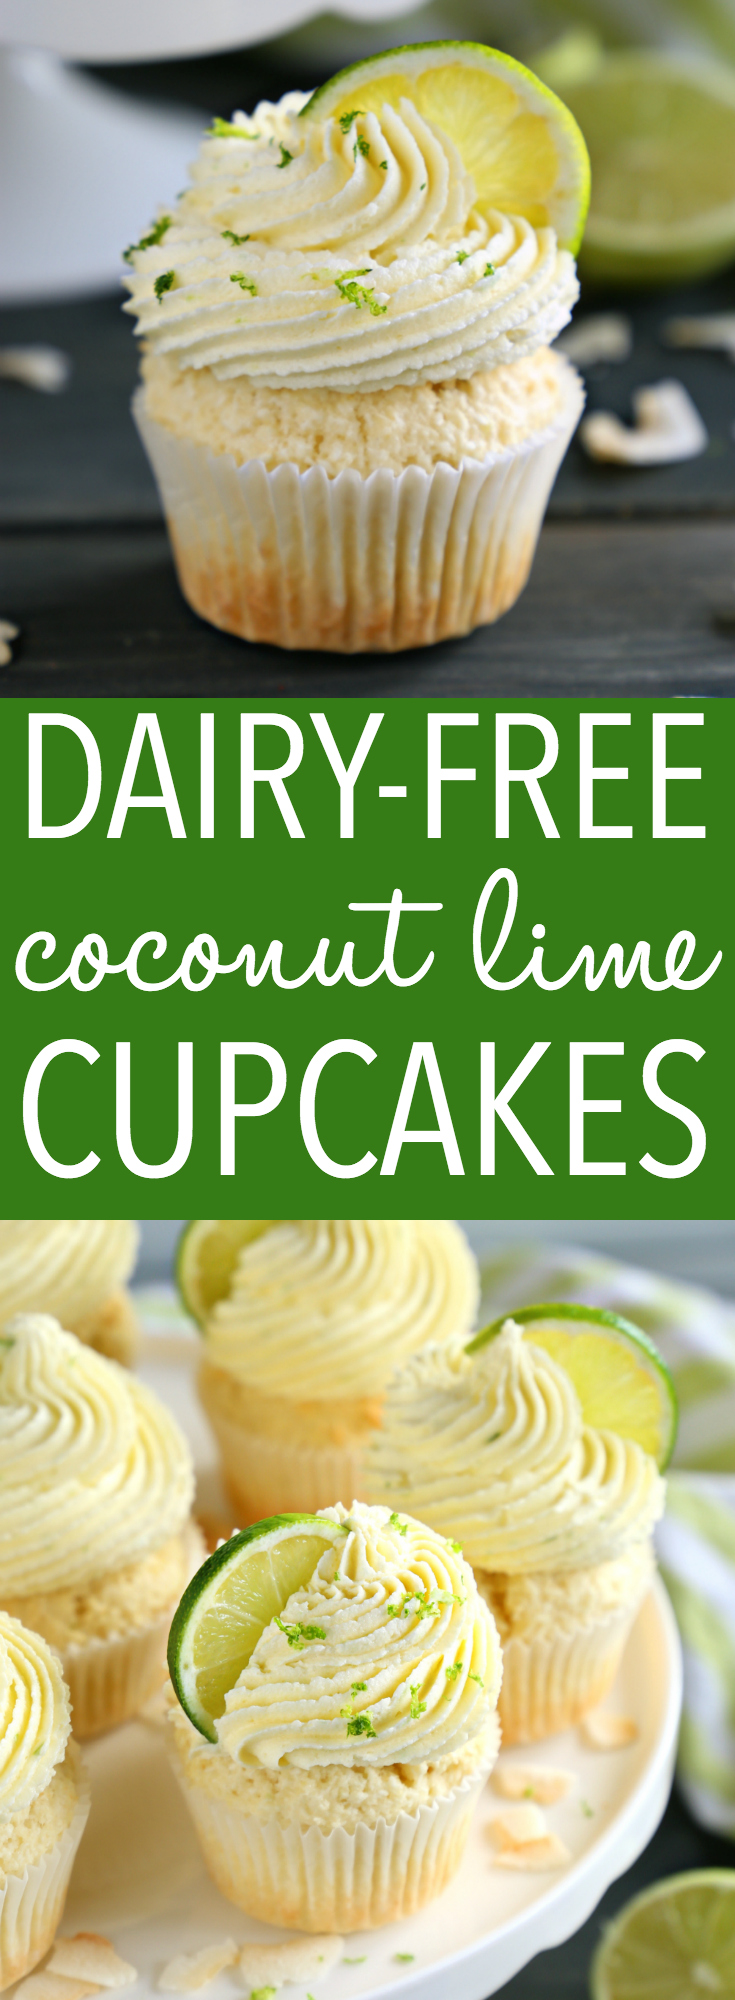 These Dairy-Free Coconut Lime Cupcakes are the perfect summer cupcake recipe with a delicious citrus flavour! Made with no dairy and real coconut! Recipe from thebusybaker.ca! #cupcakes #coconutcupcakes #coconutlimecupcakes #coconutdessert #easydessert #cake  #healthy